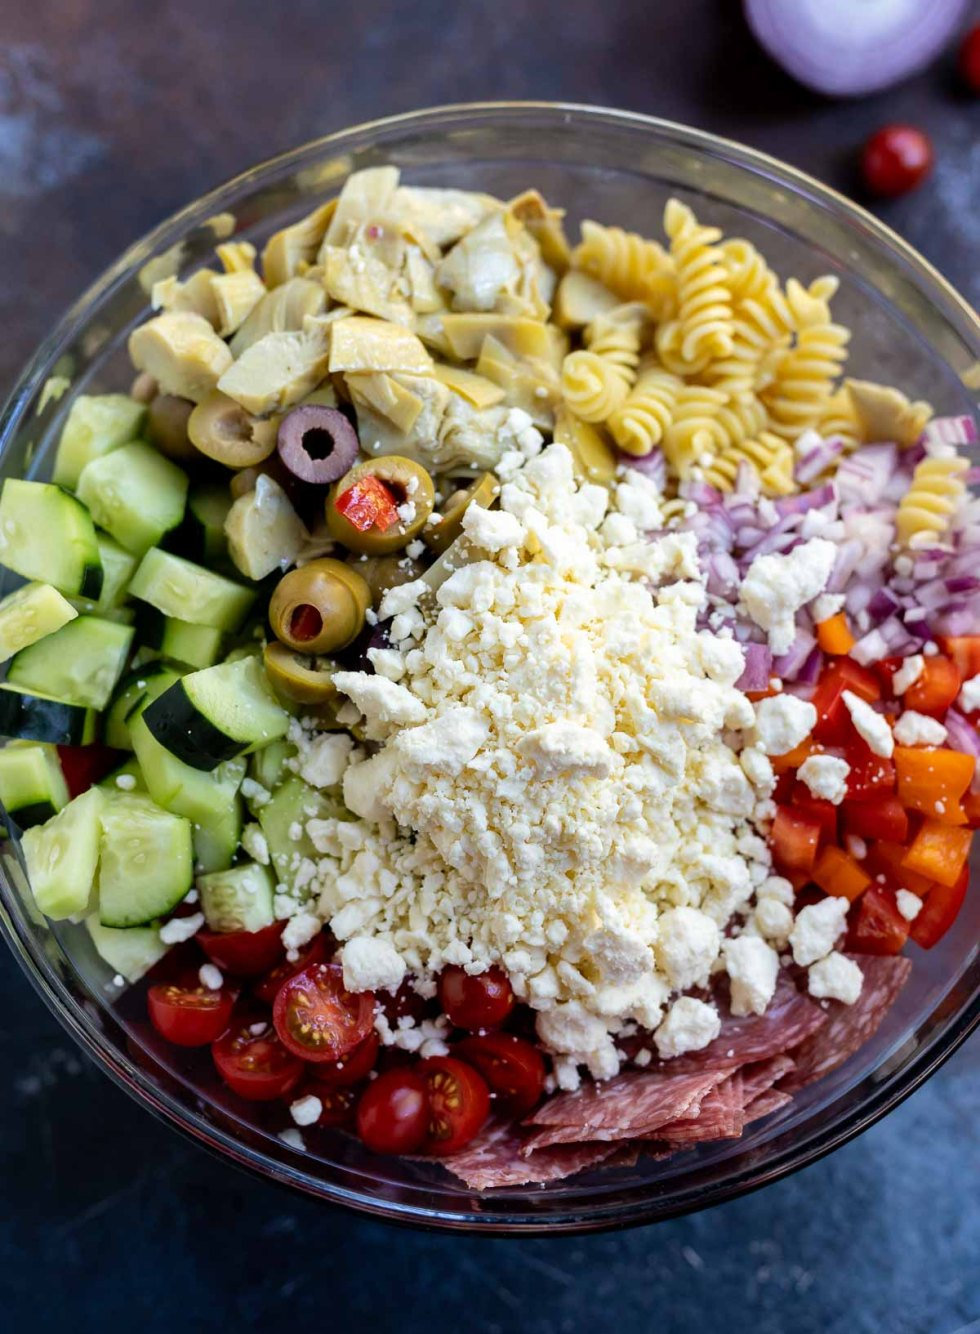 pasta salad ingredients in clear bowl